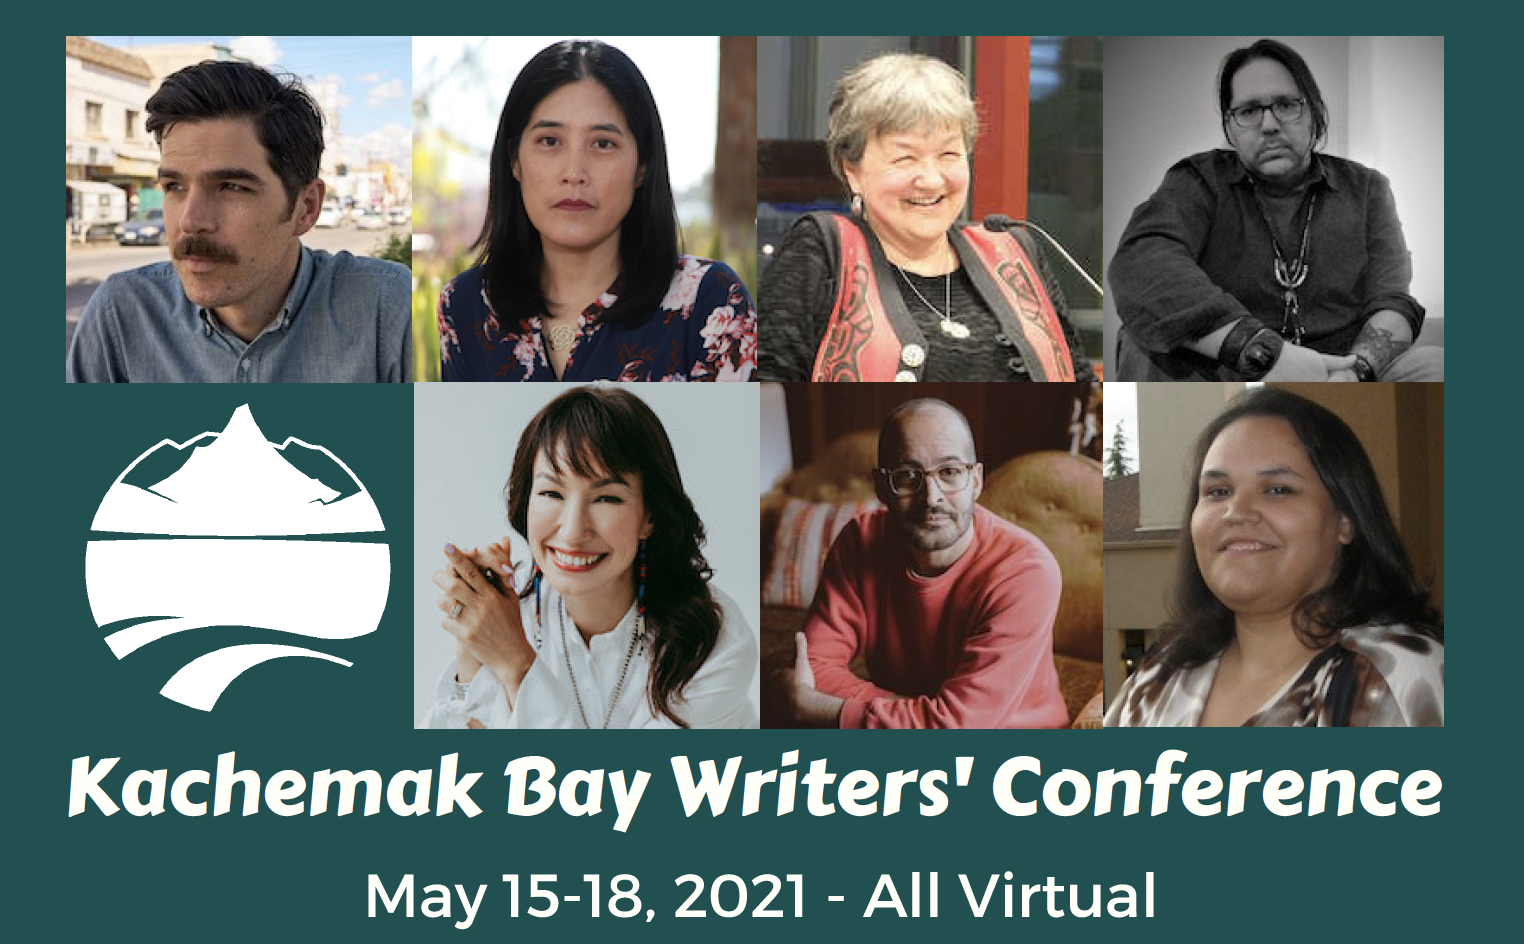 Images of Kachemak Bay Writers' Conference Presenters and May 15-18- All Virtual